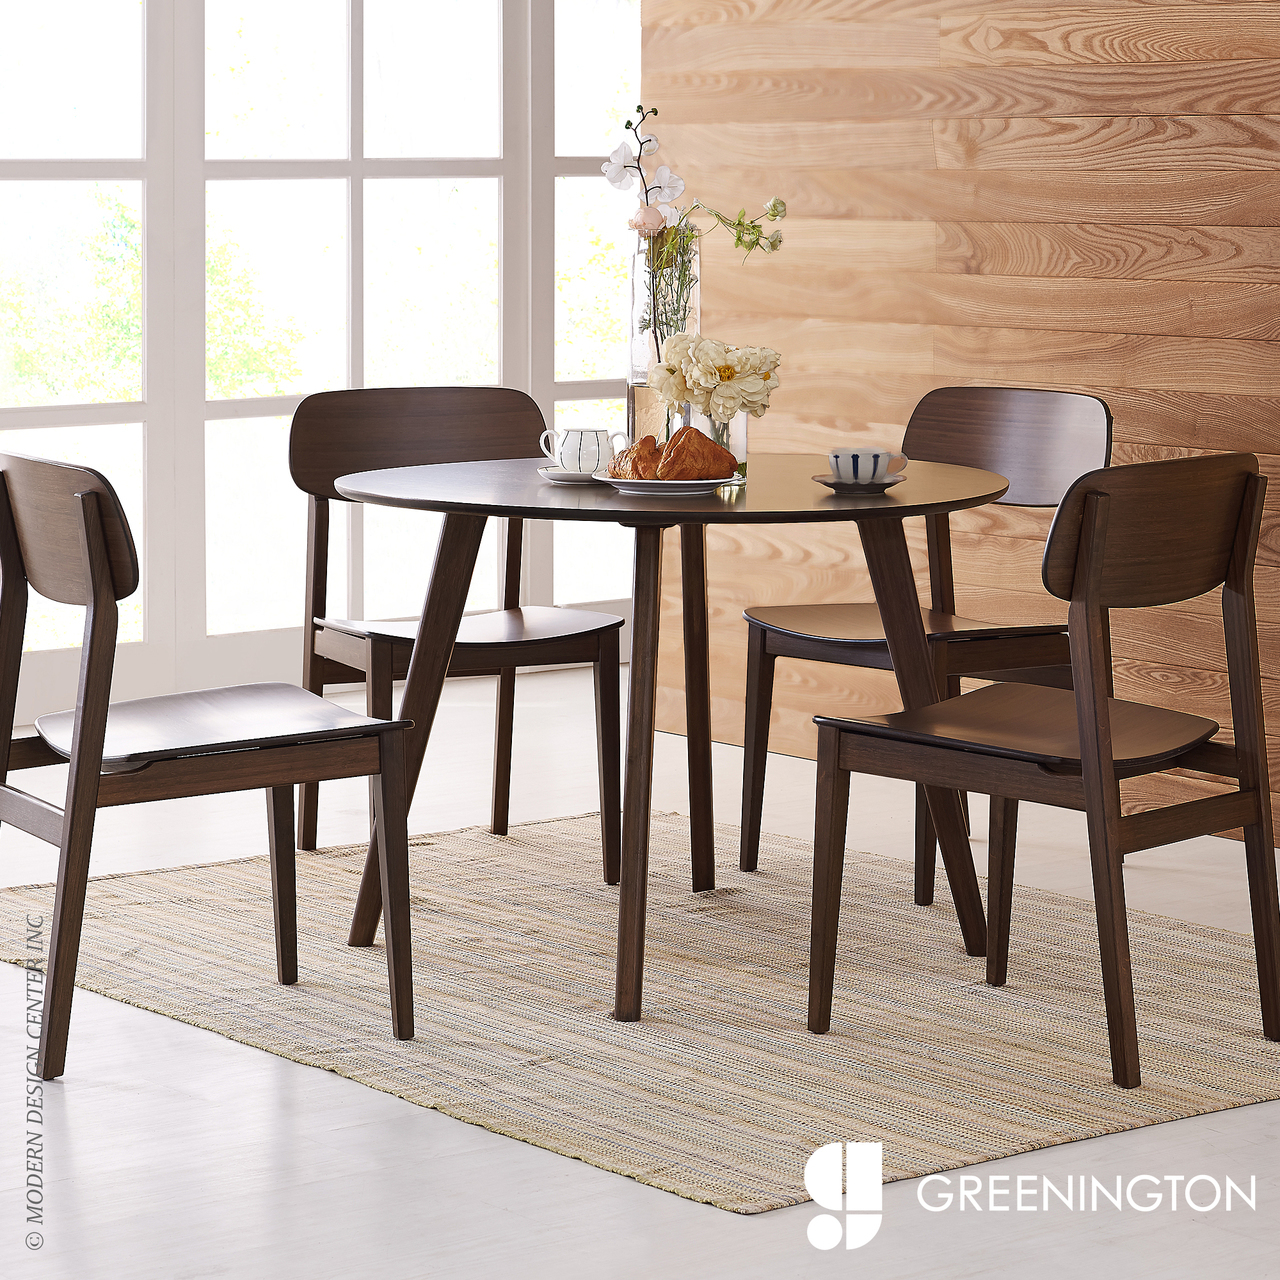 Currant Inch Round Dining Table Greenington MetropolitanDecor - 42 inch round dining room table